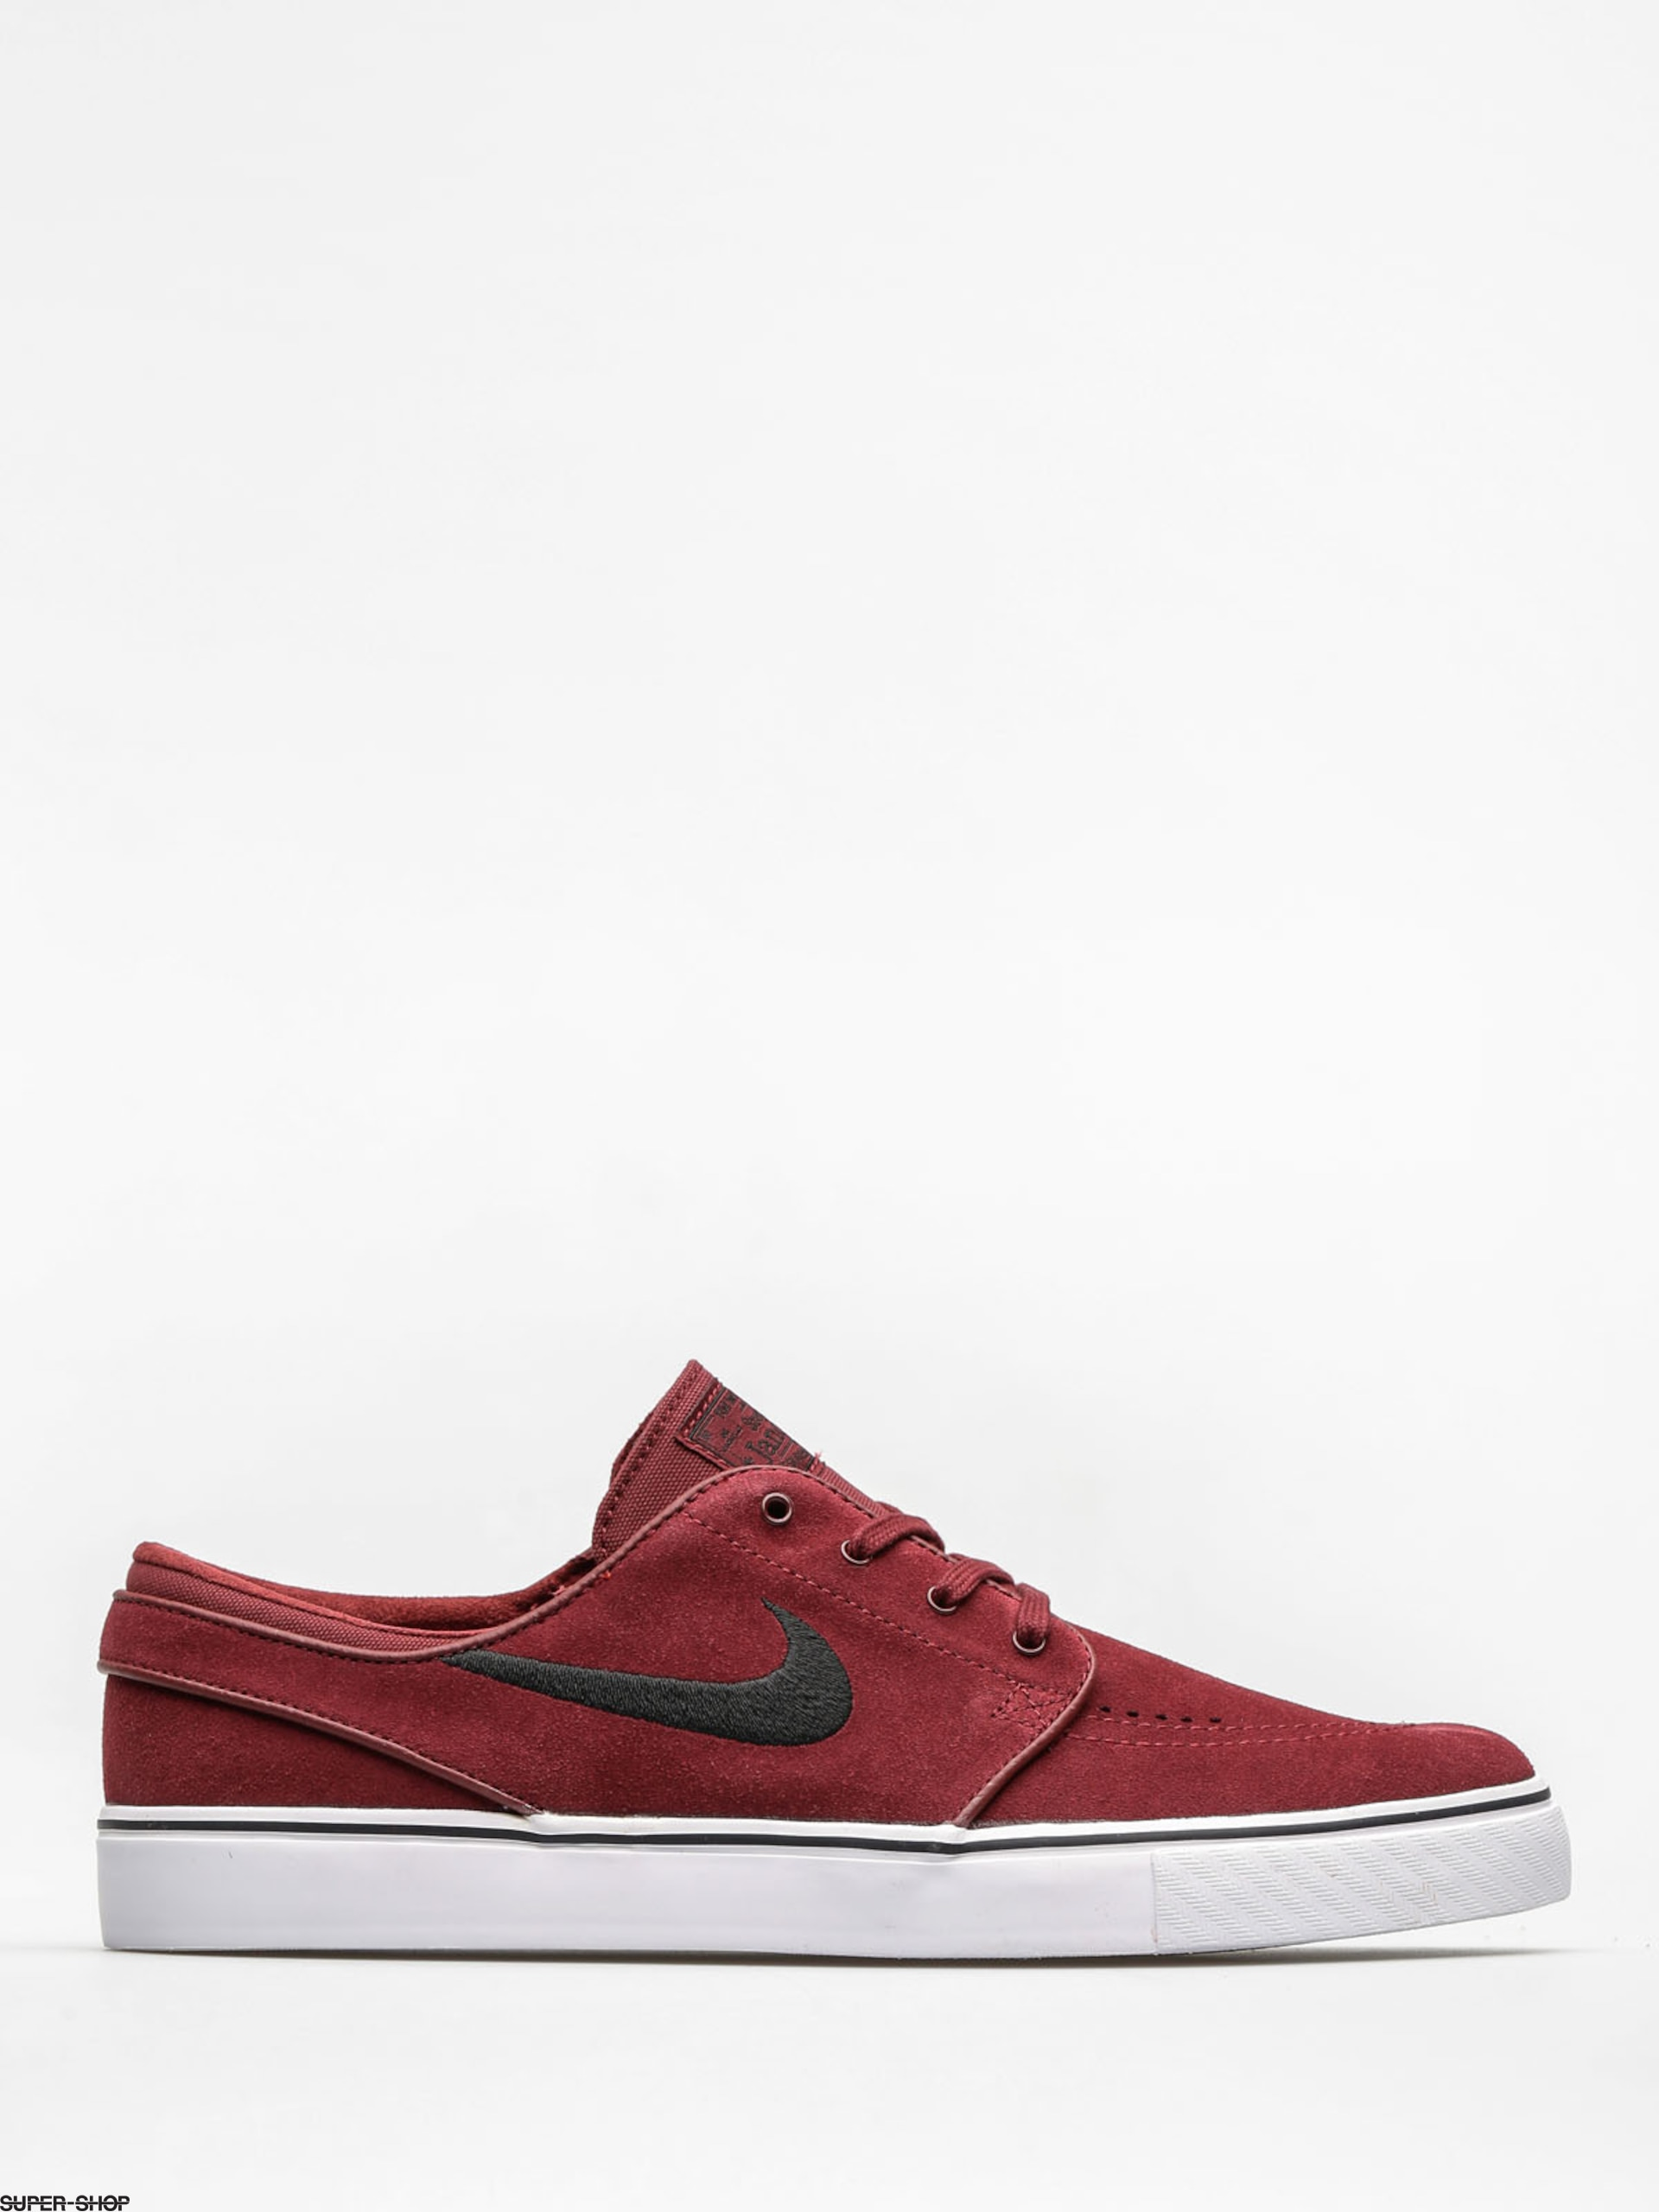 Modales Fuera de servicio Noble  Nike SB Shoes Zoom Stefan Janoski (dark team red/black)